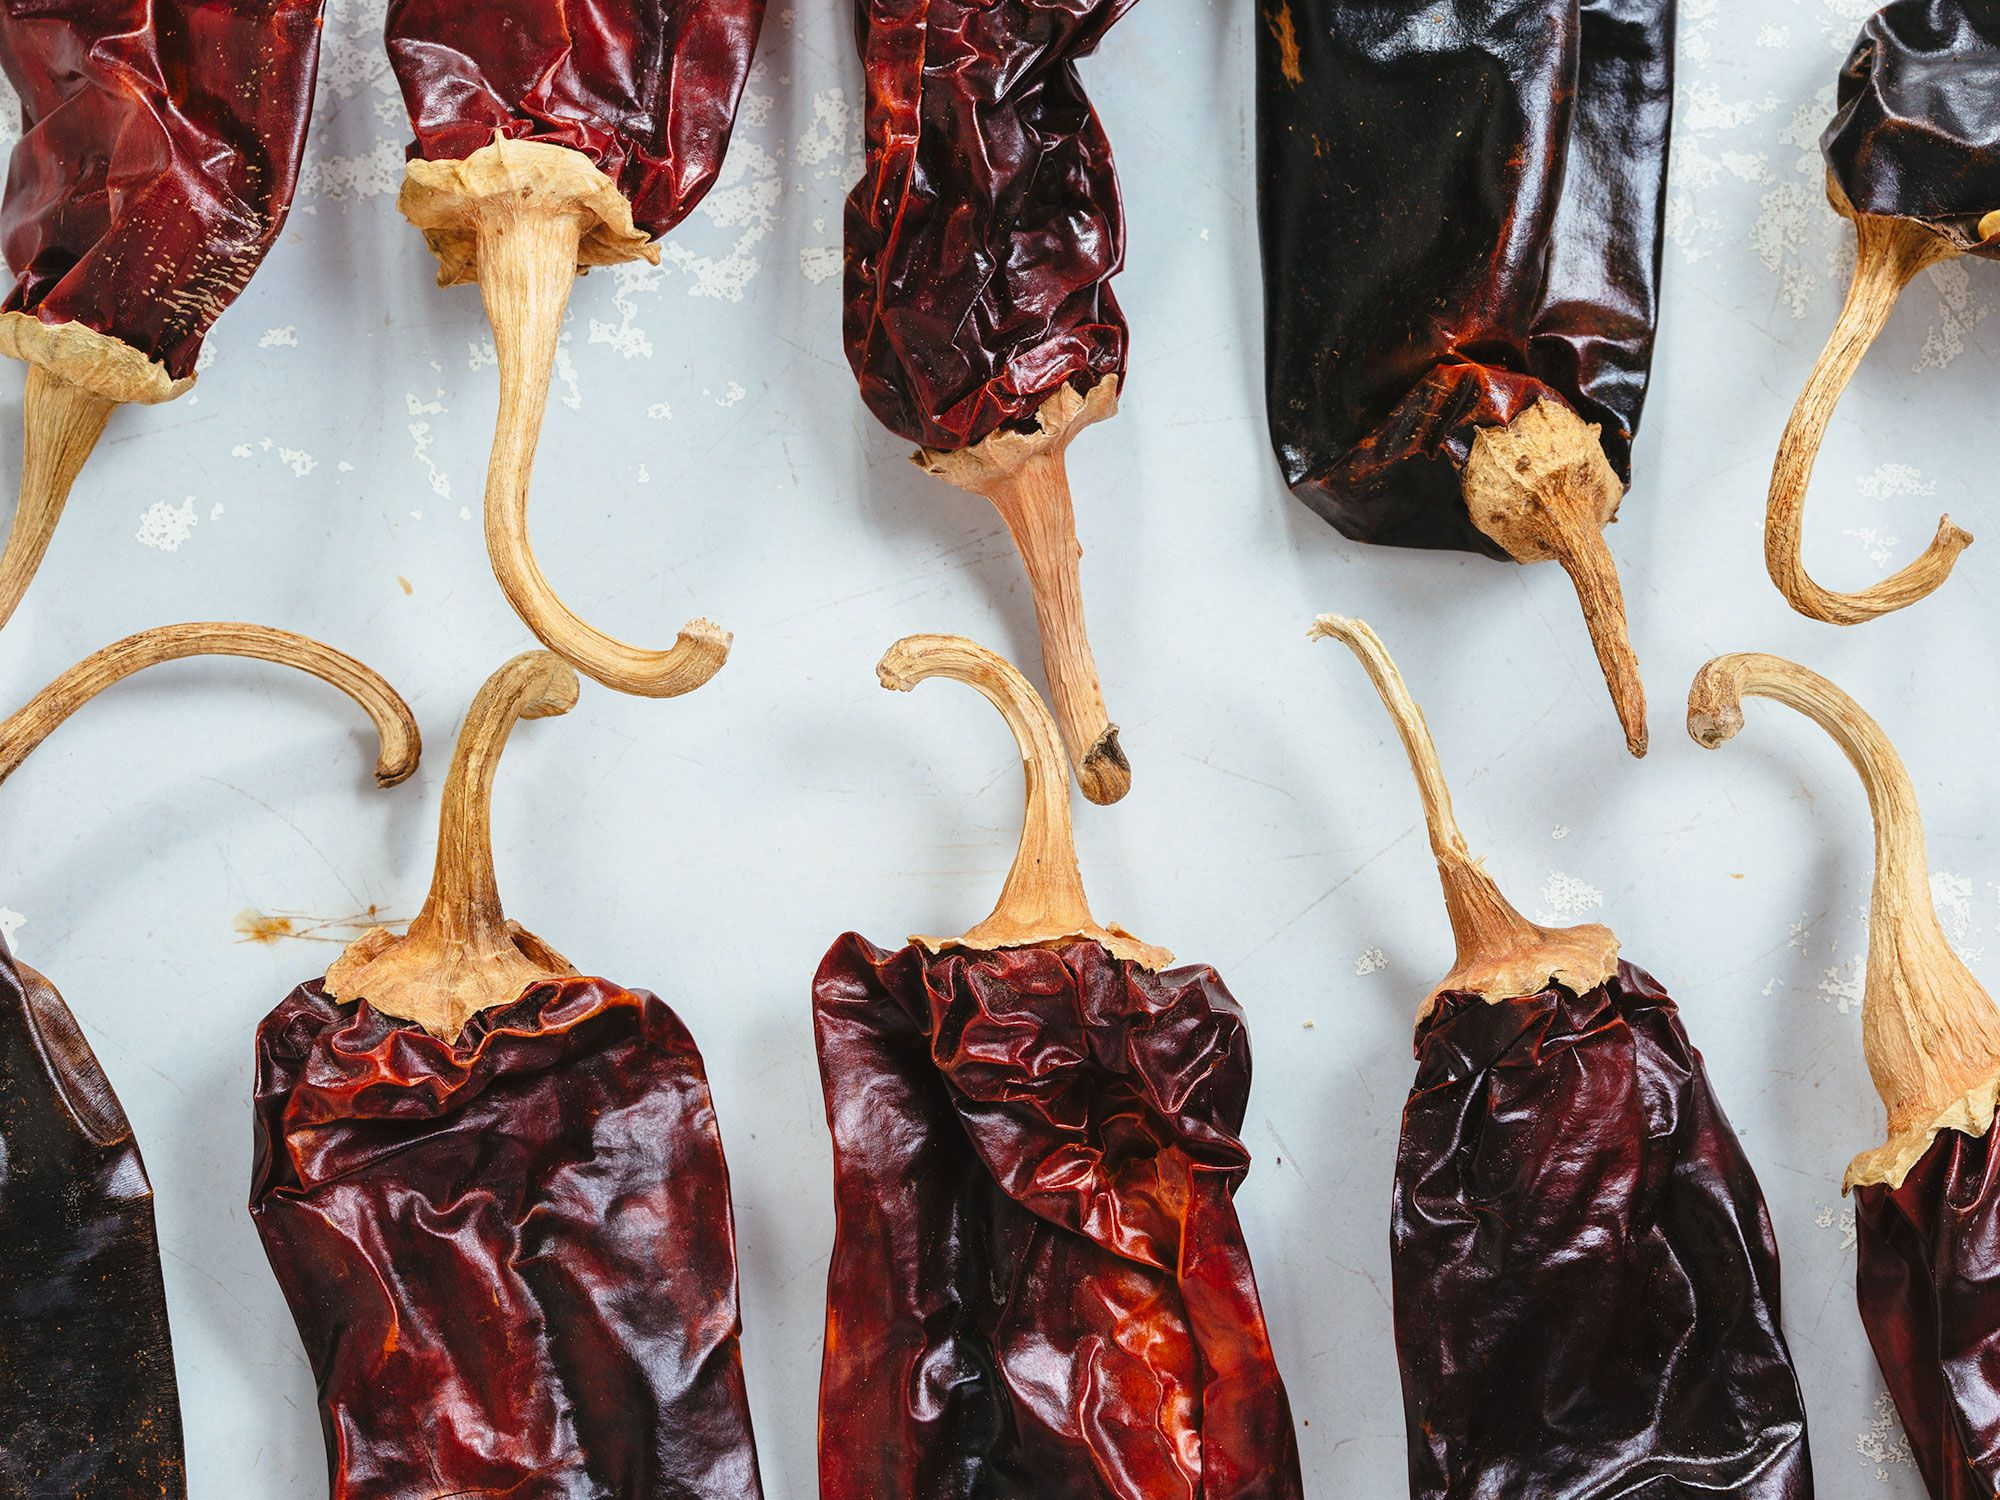 How To Shop For And Cook With Mexican Chiles Saveur